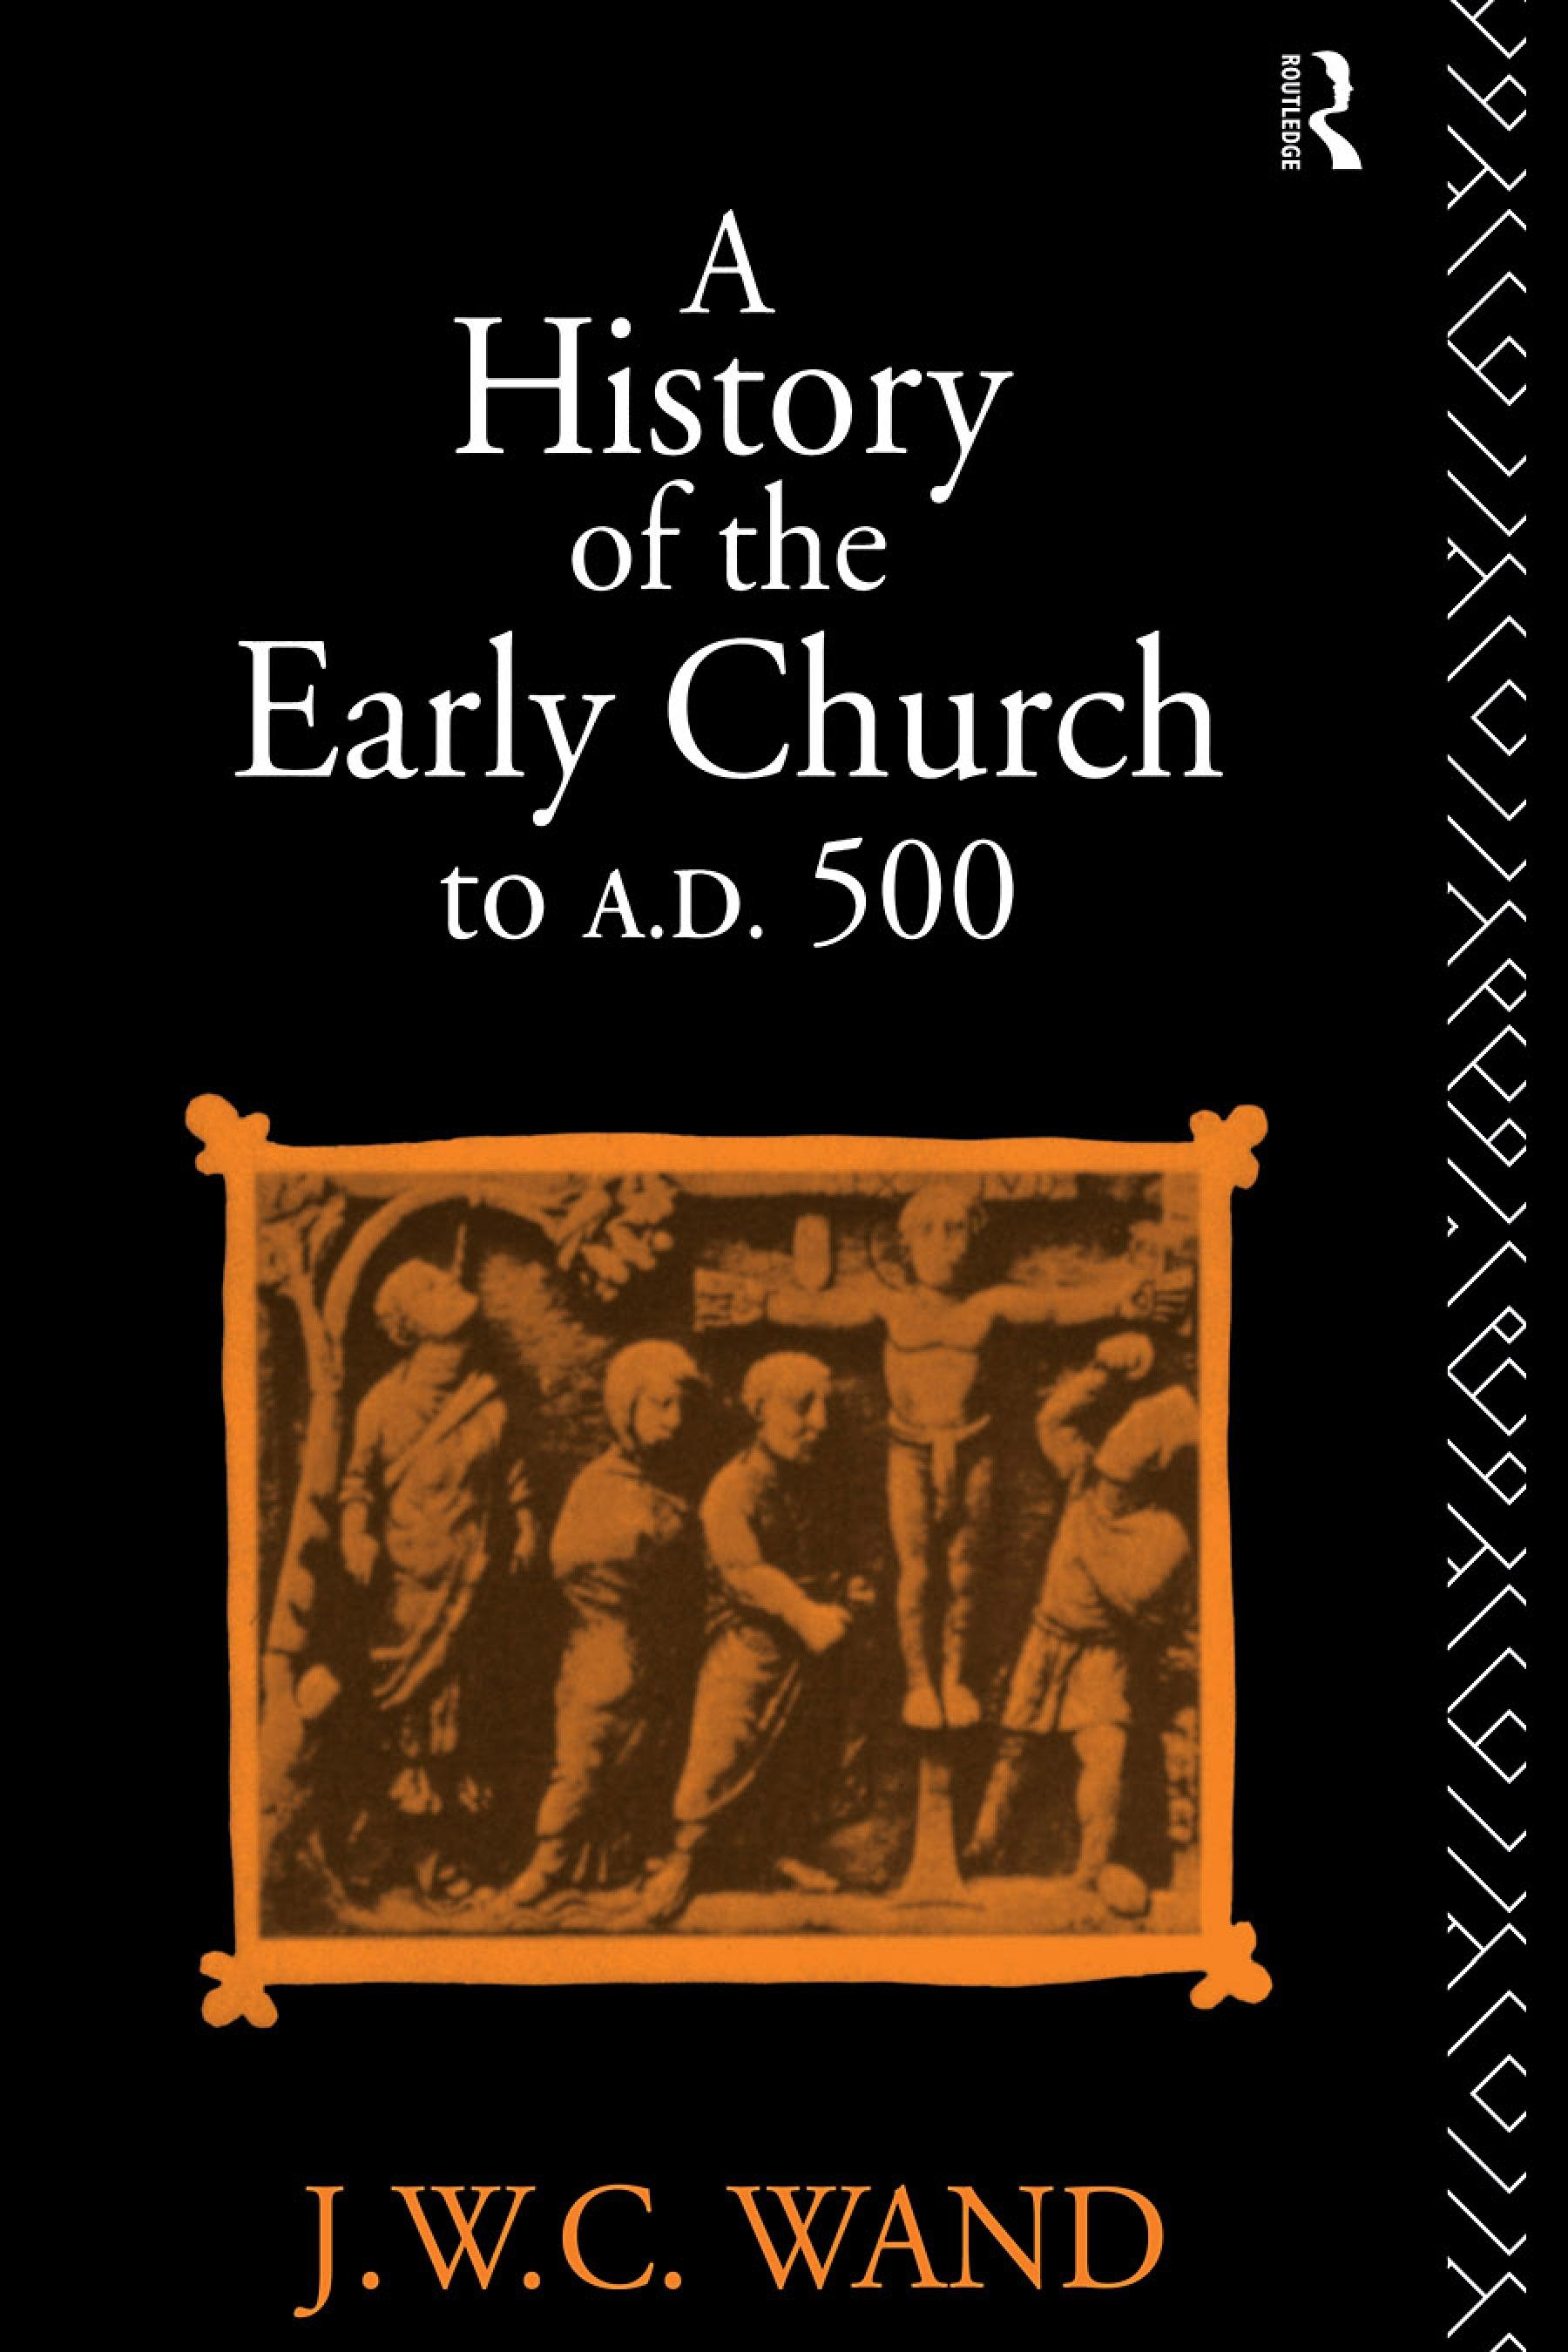 A History of the Early Church to AD 500